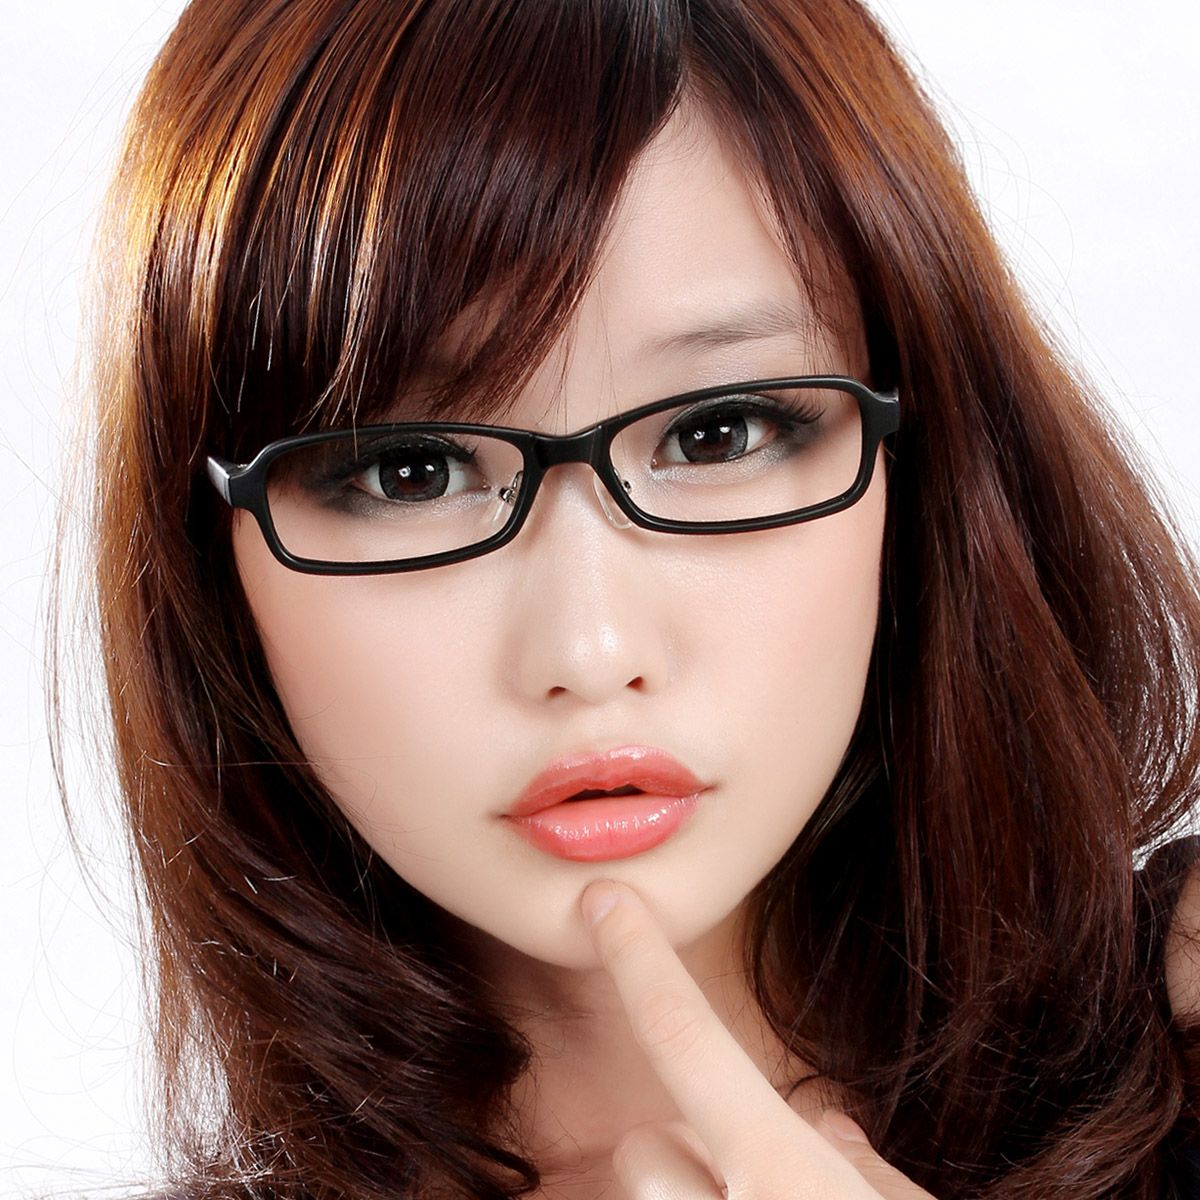 black-glasses-frames-for-womenimages-for-black-glasses-for-women-74ahhcly.jpg (1200×1200)